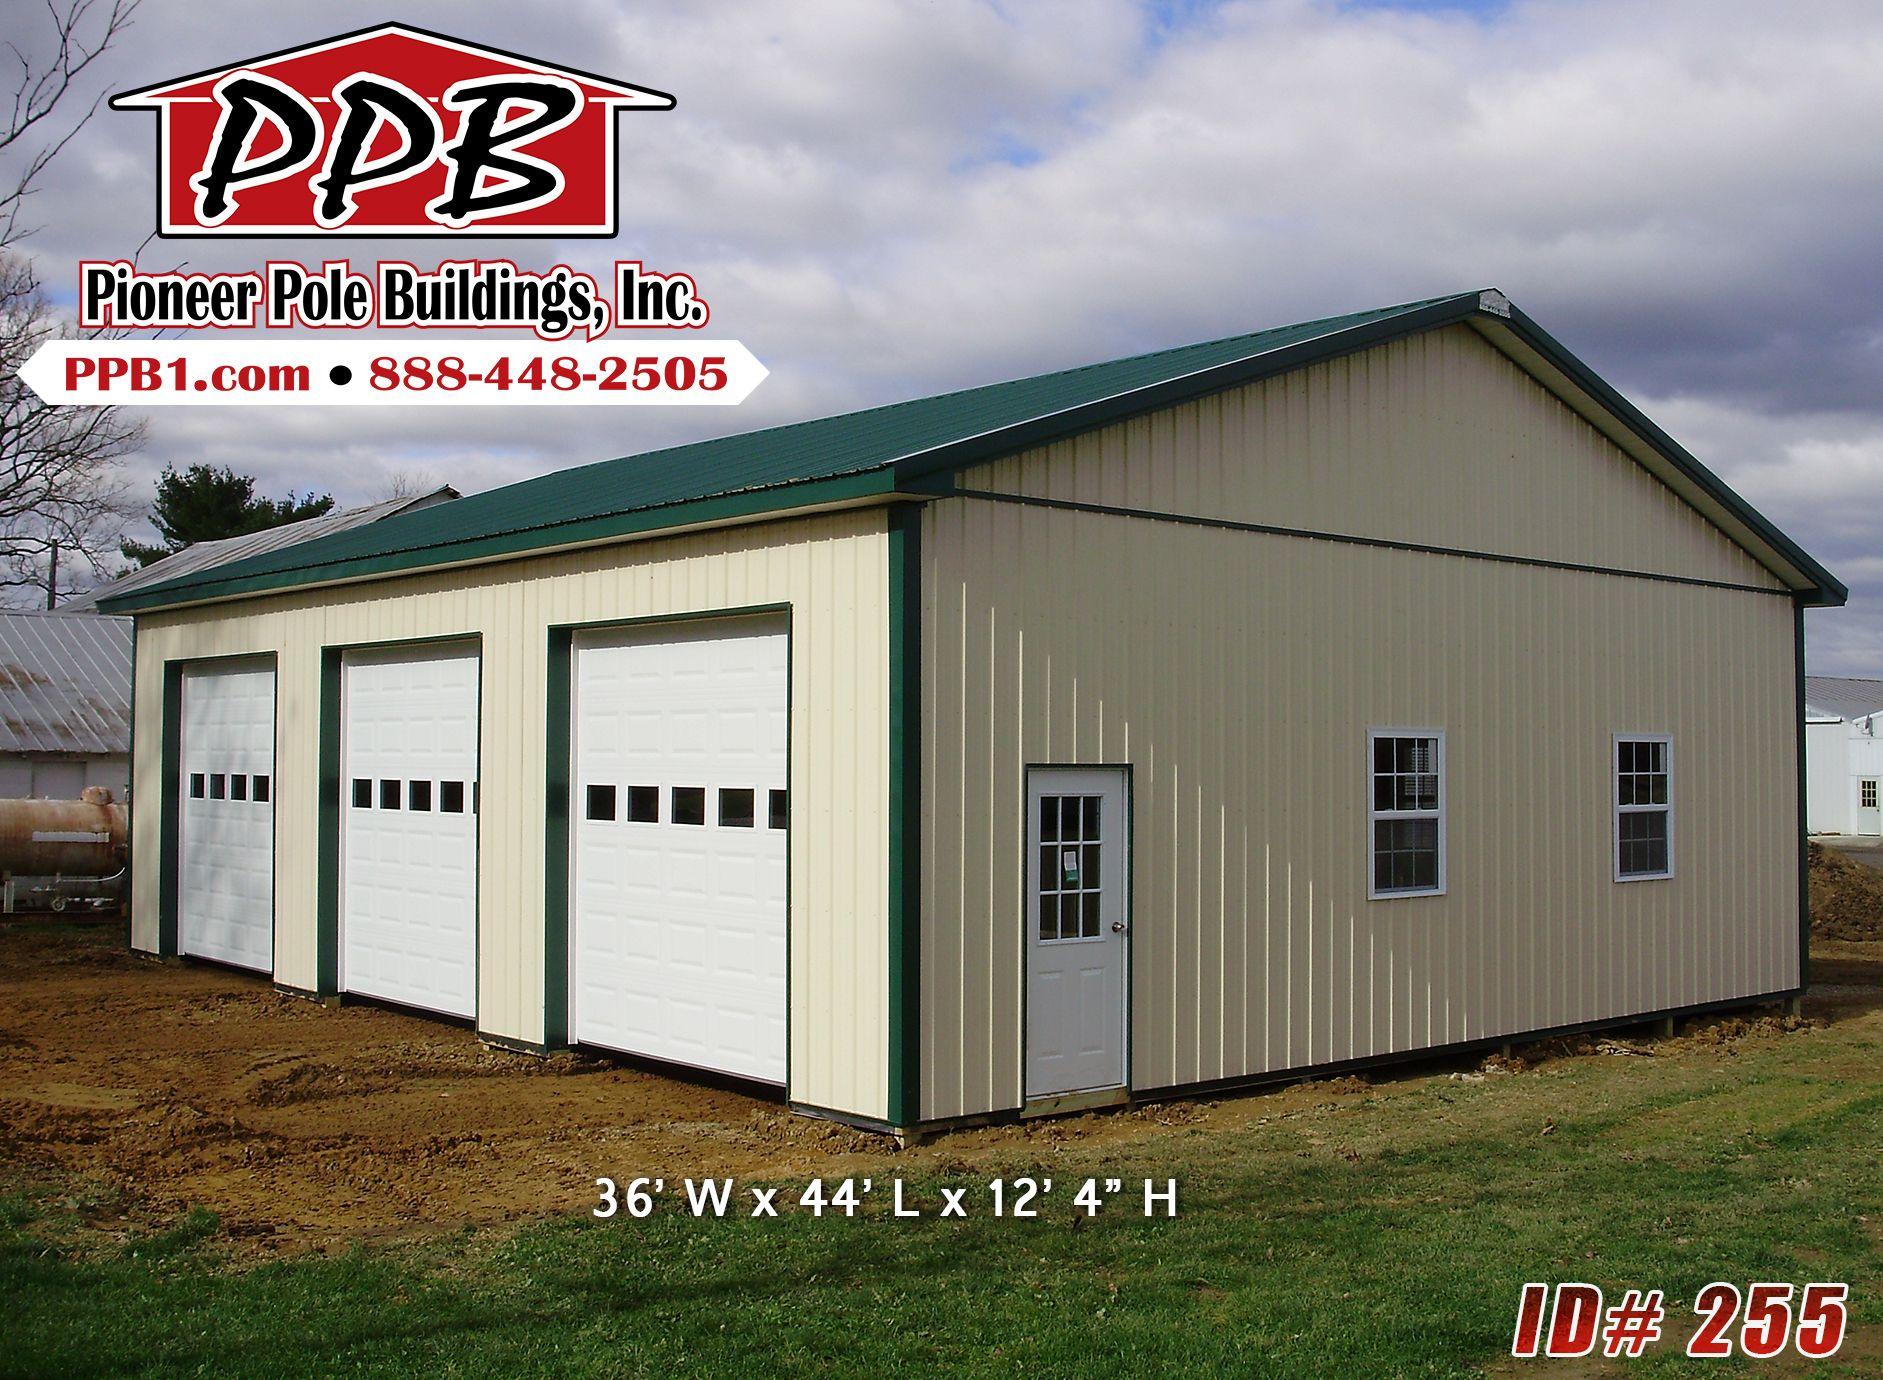 3 Car Garage With Center Door 22114sl: Pin By Pioneer Pole Buildings, Inc. On Garages